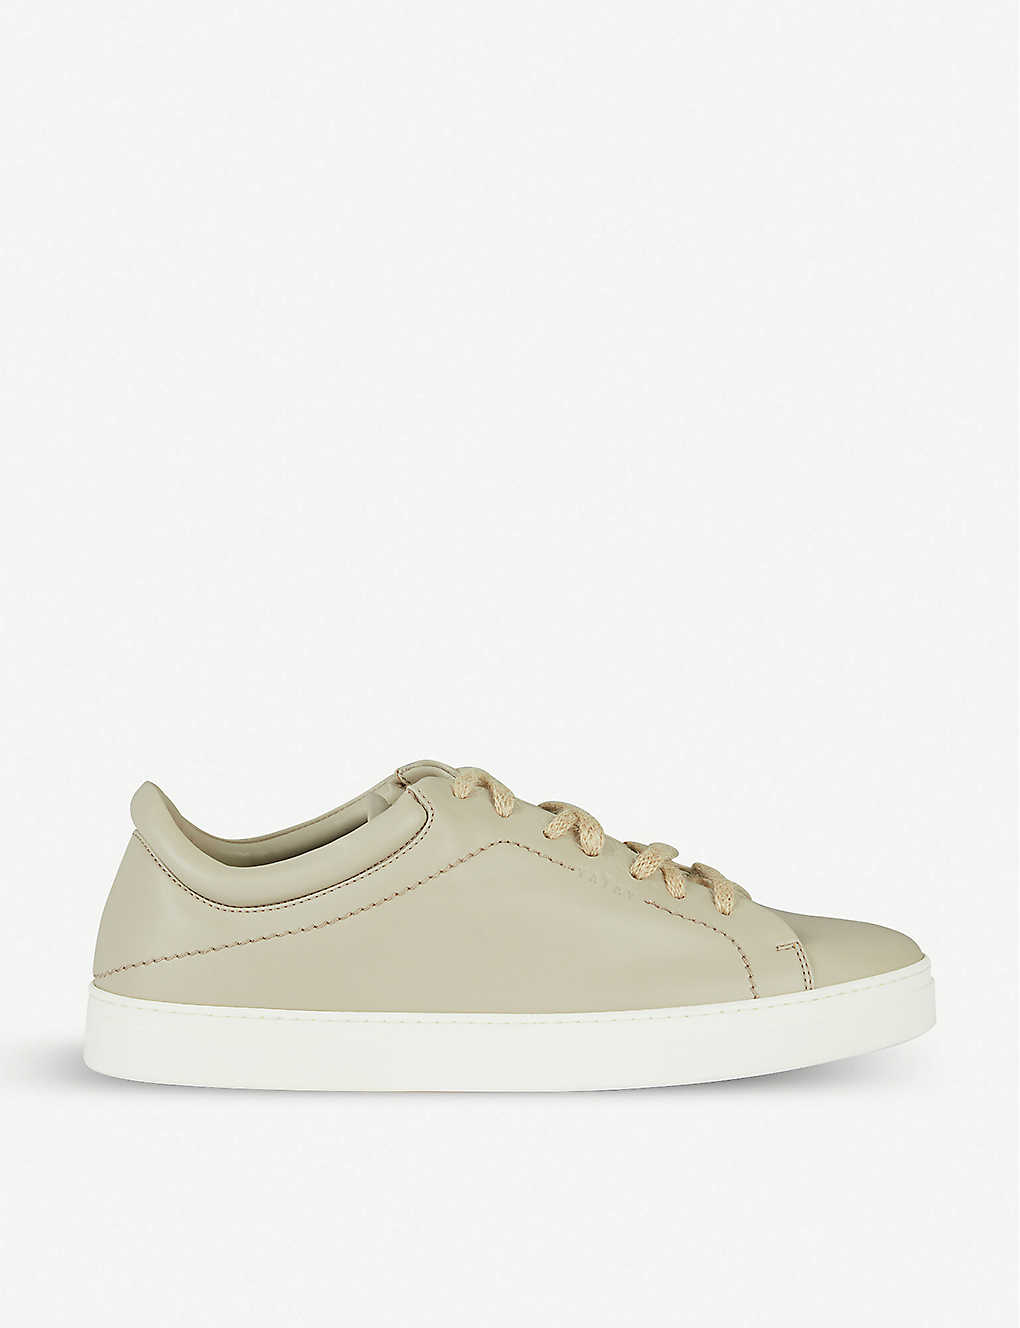 Yatay sneakers at Selfridges - £220 - So many boxes ticked - unisex, sustainably sourced, sleek and now available at Selfridges